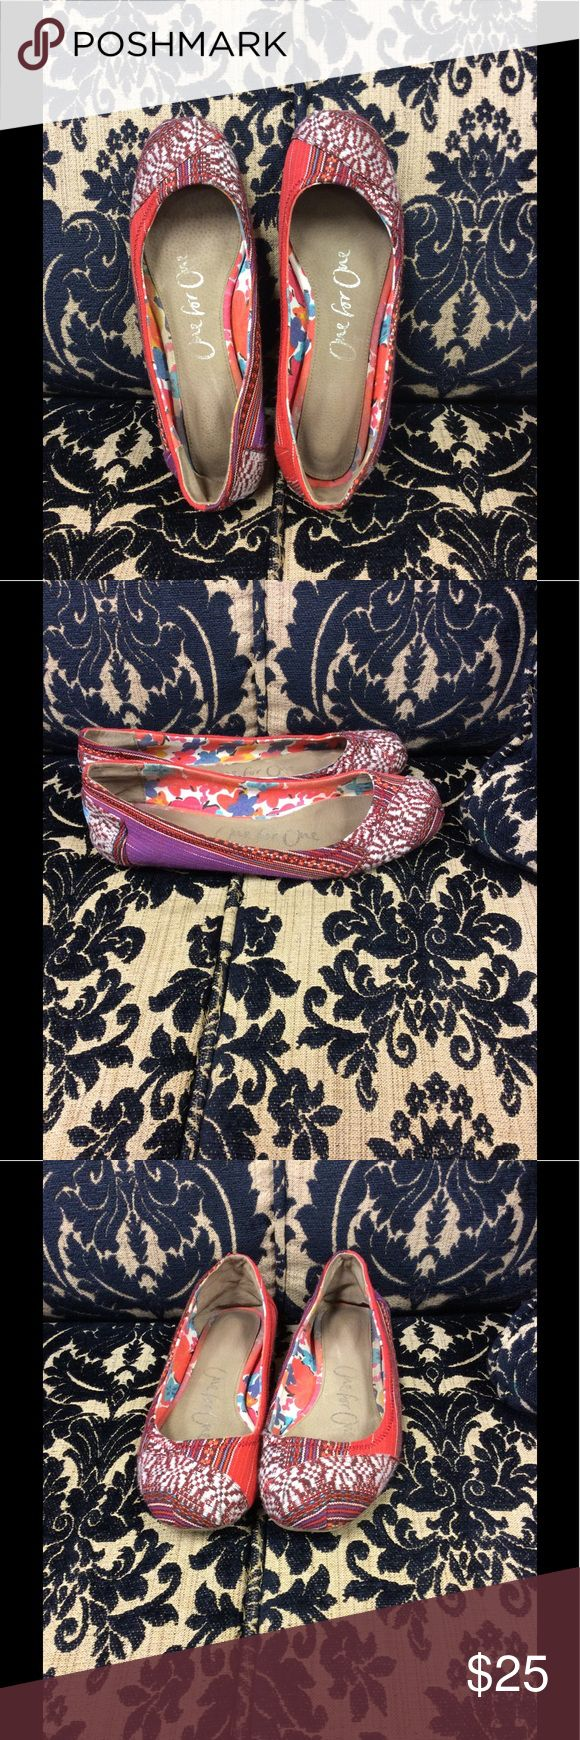 Tom's ballet flats size 9 size 9 Tom's ballet flats. Rip and stain free. Smoke free home TOMS Shoes Flats & Loafers